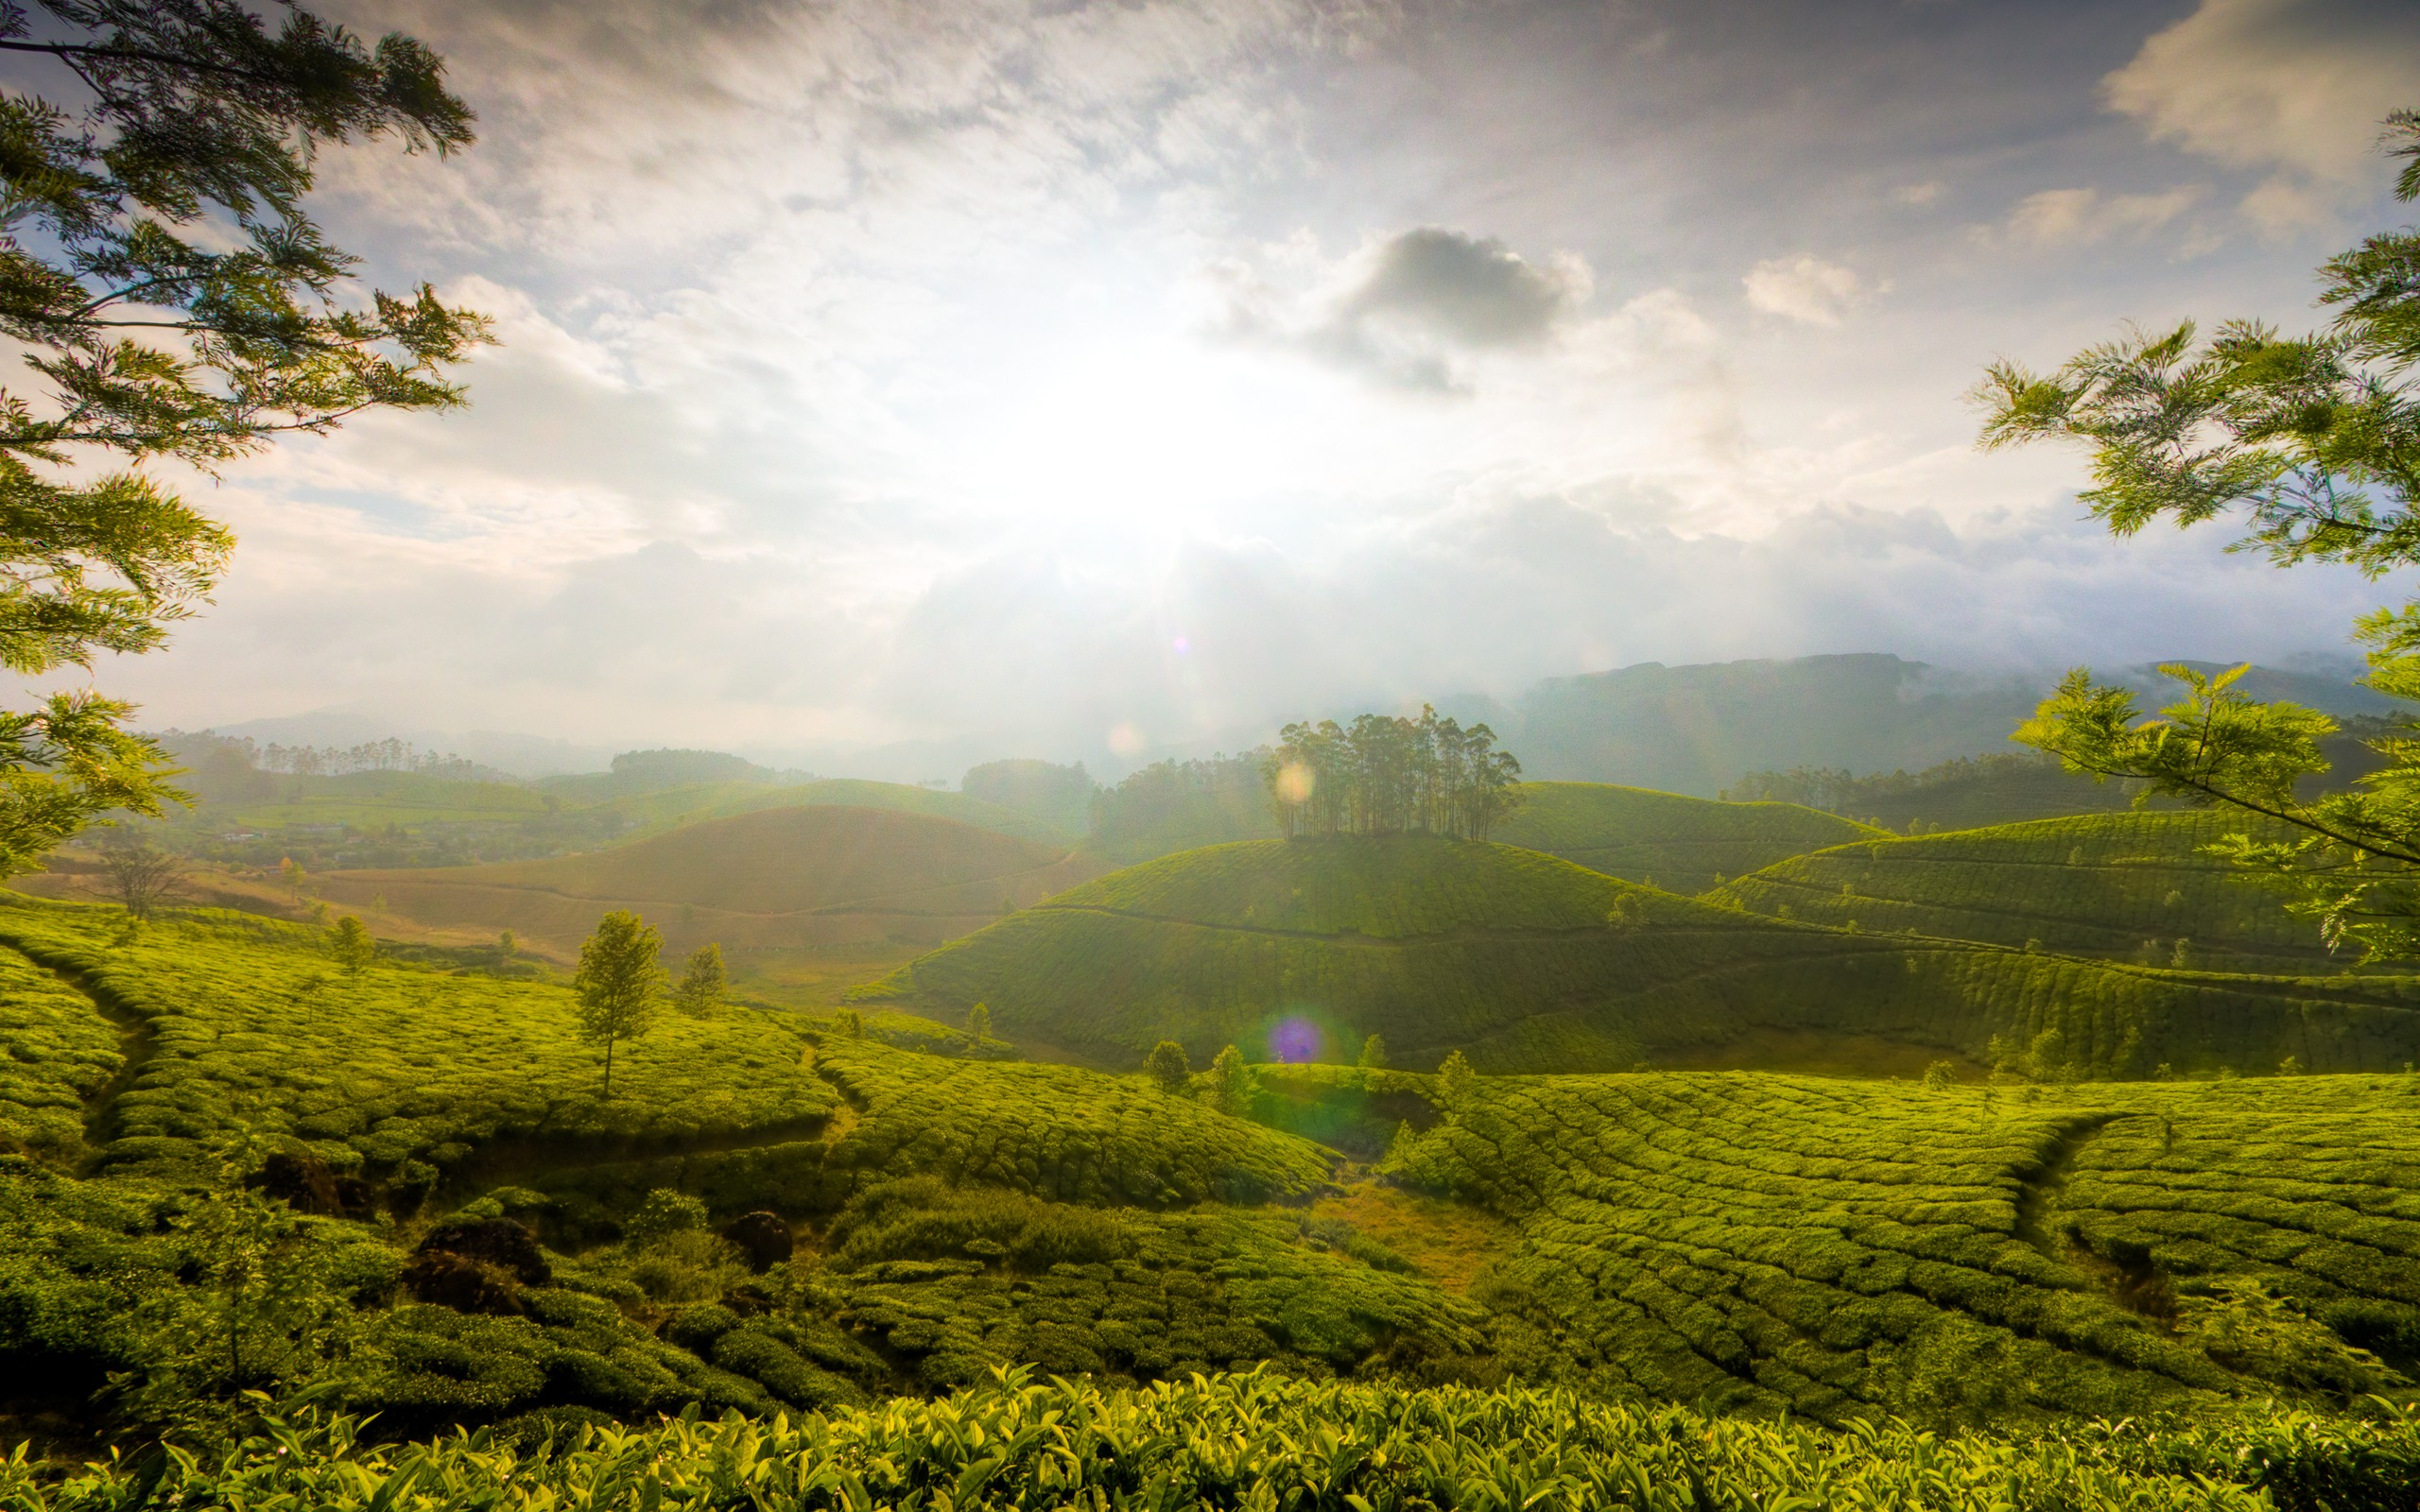 munnar hills india, hd world, 4k wallpapers, images, backgrounds